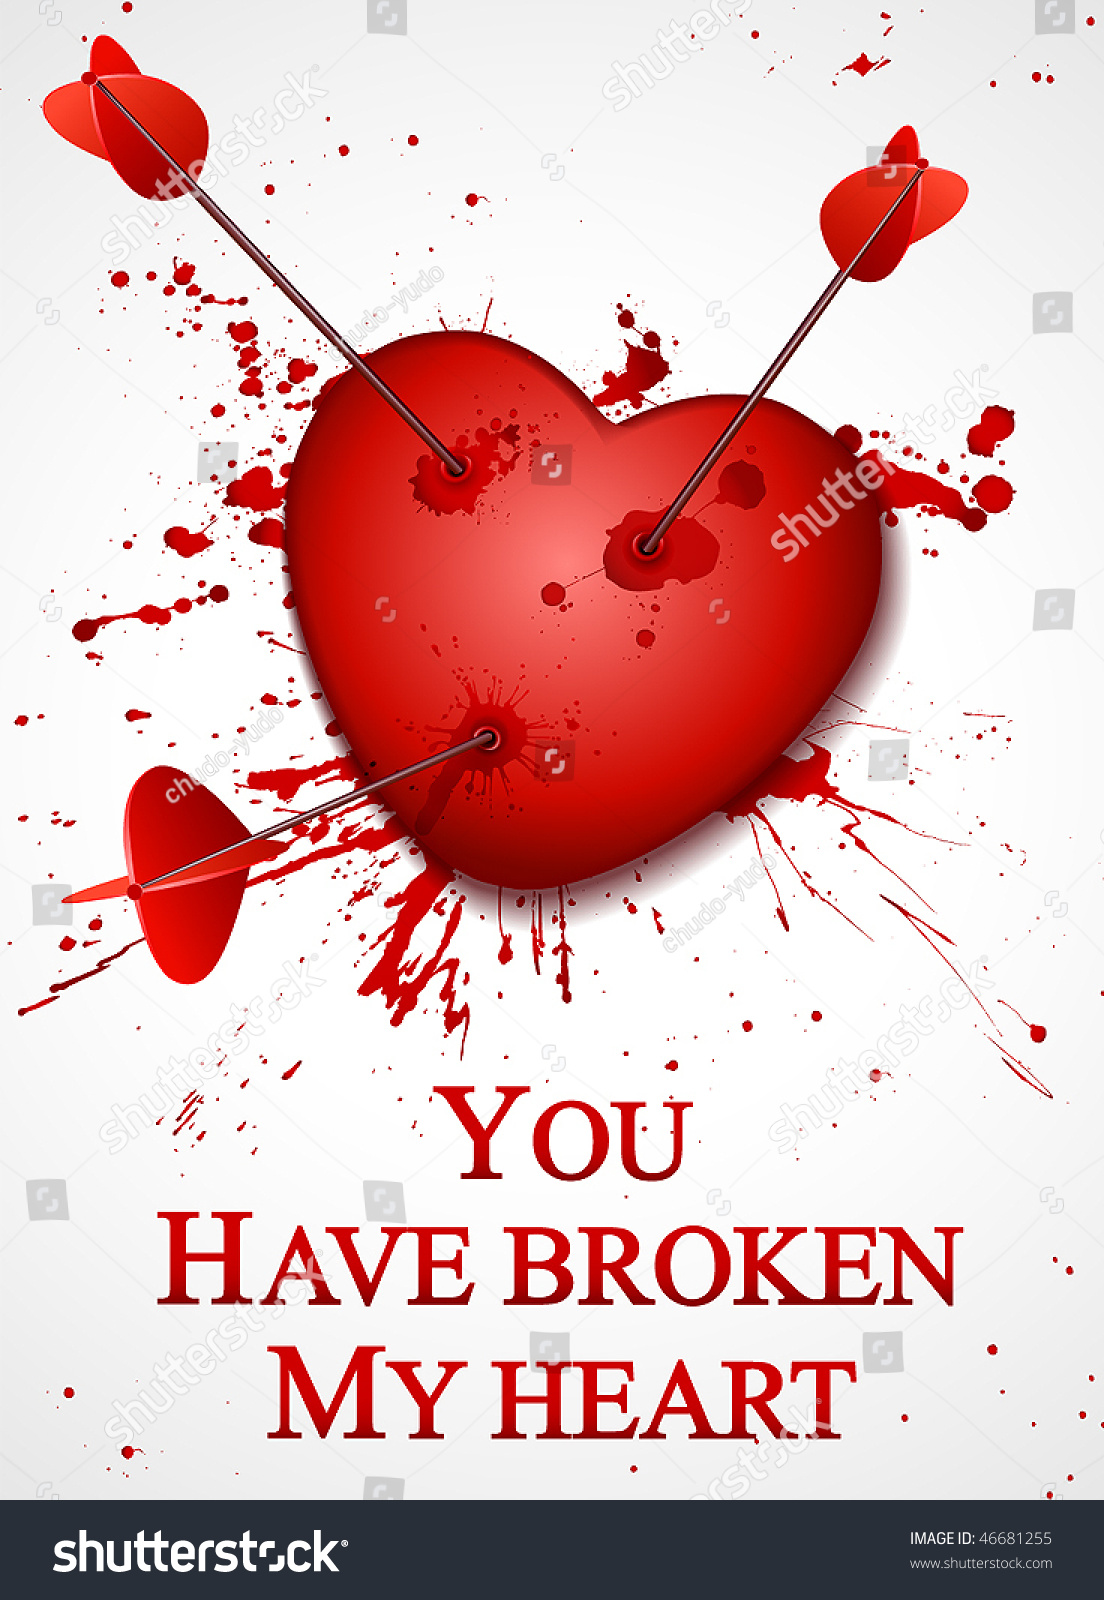 Cute Valentines Day Quotes for Broken Heart Compilation